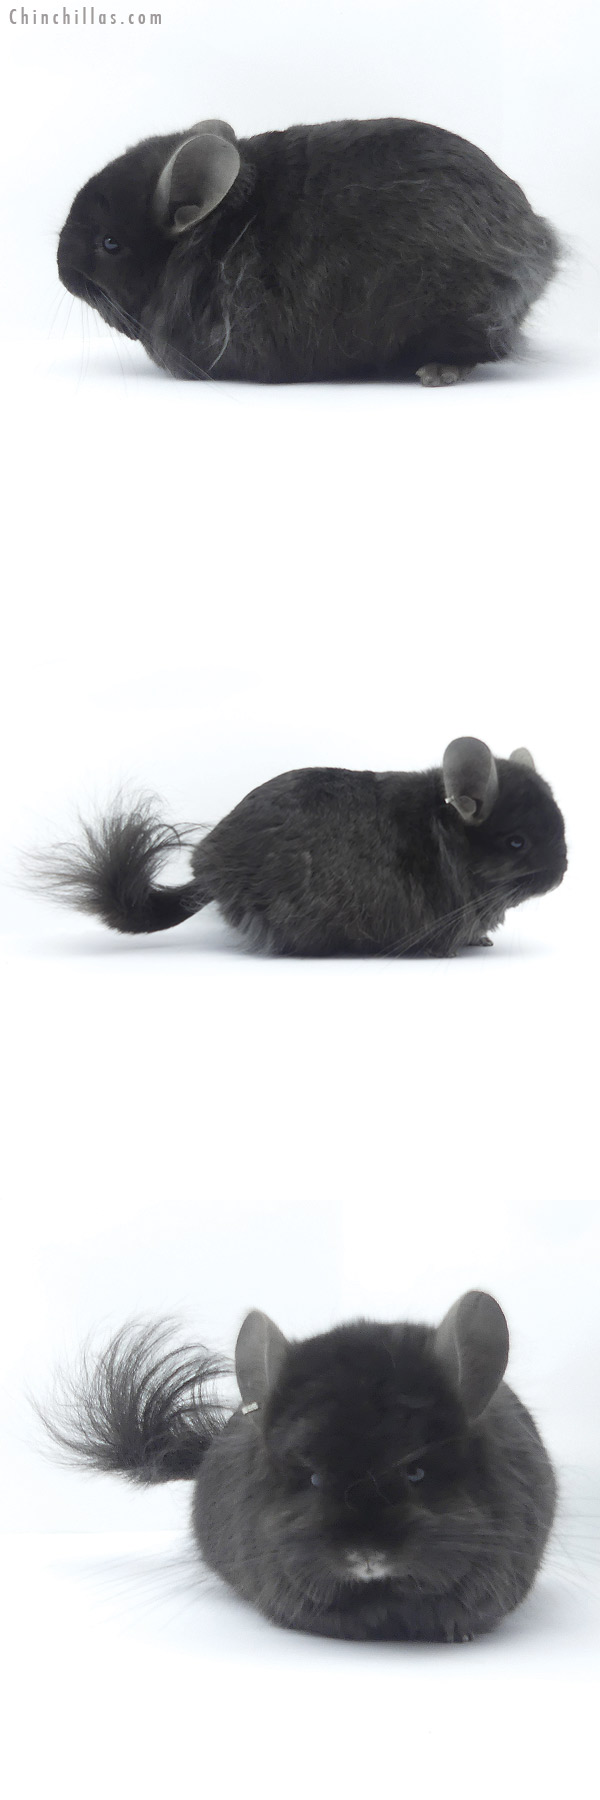 19401 Brevi Type Ebony ( Locken Carrier ) G2 CCCU Royal Persian Angora Male Chinchilla